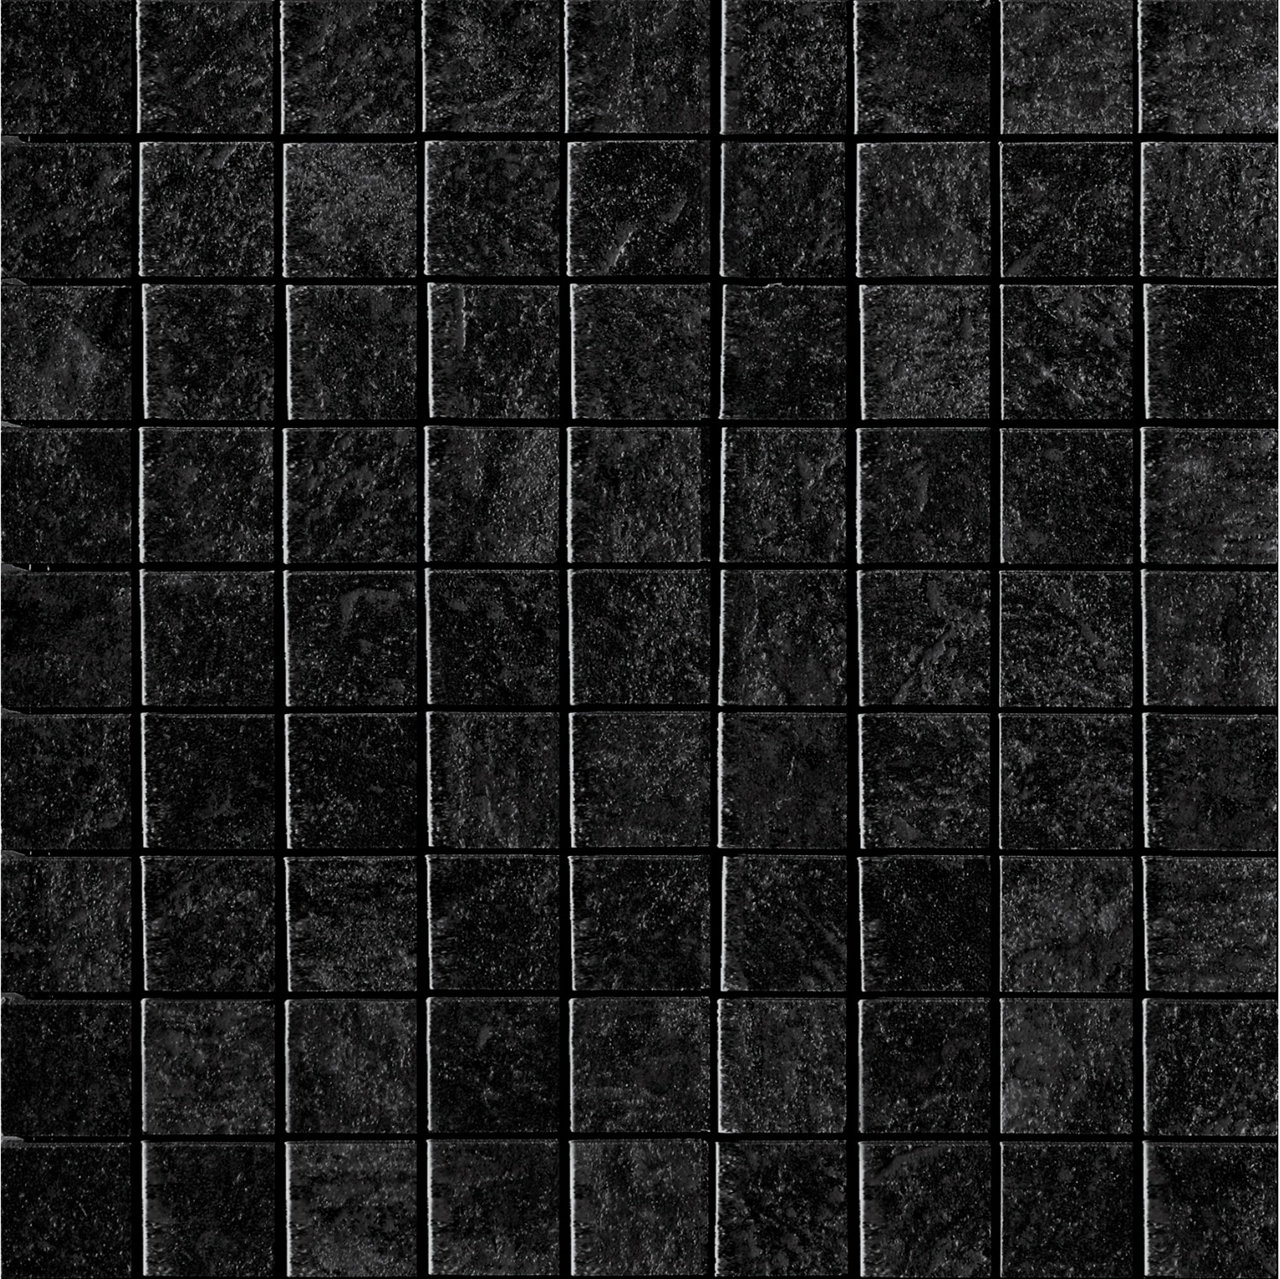 u-luxurious-black-tile-bathroom-black-tile-effect-laminate-black-tile-effect-wallpaper-black-tile-effect-lino-black-tile-edging-black-tile-edge-trim-black-tile-effect-flooring-black-t